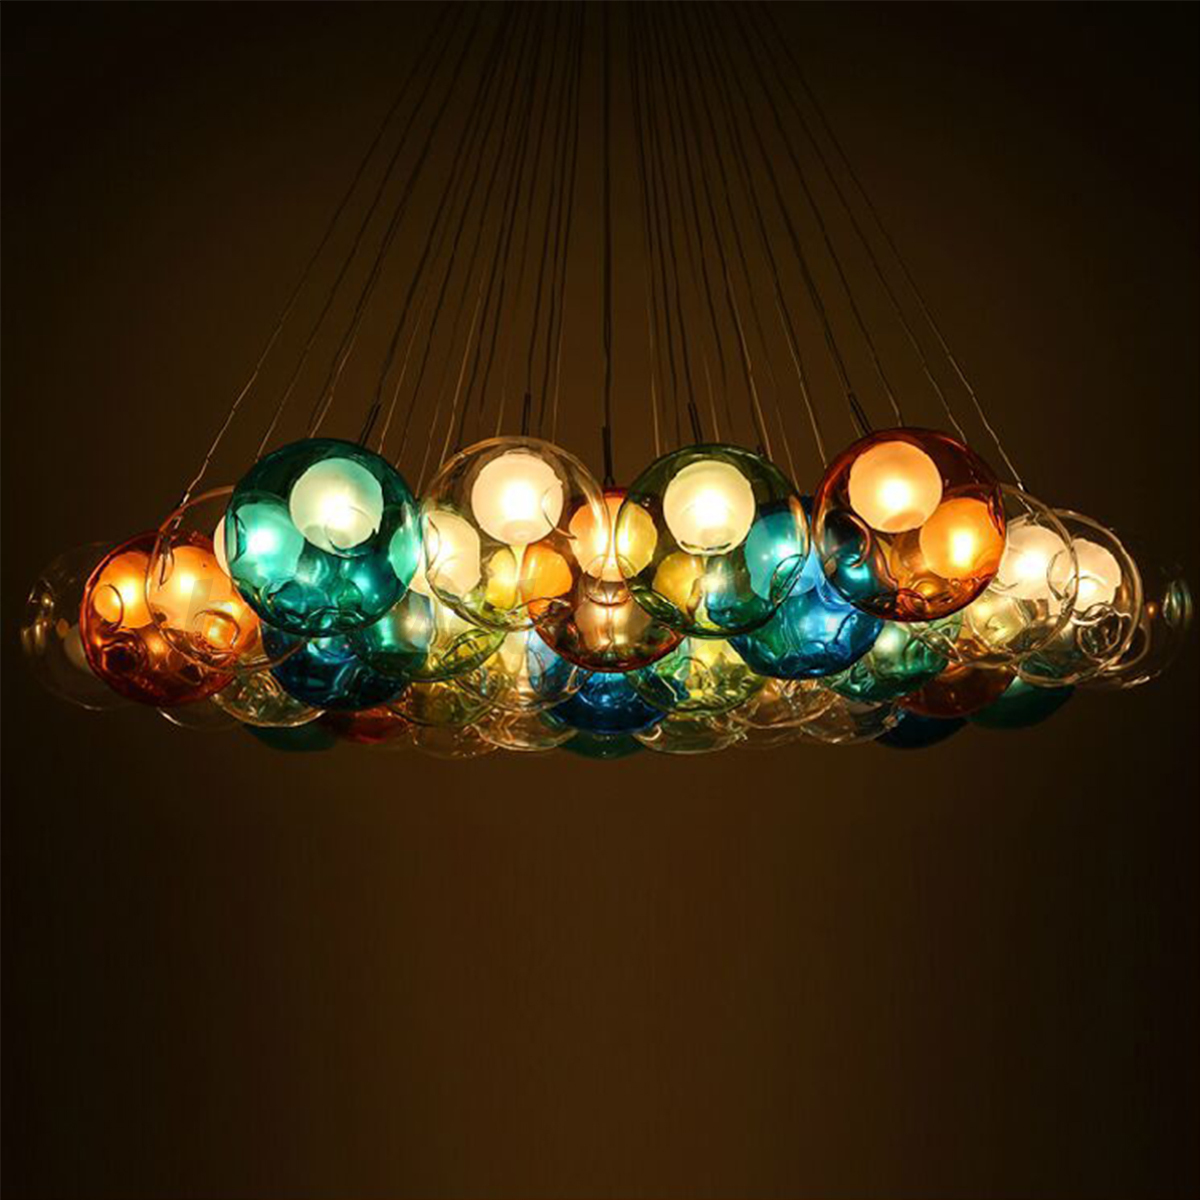 Modern colorful glass bubbles pendant light chandelier ceiling lamp lighting ebay - Chandelier ceiling lamp ...